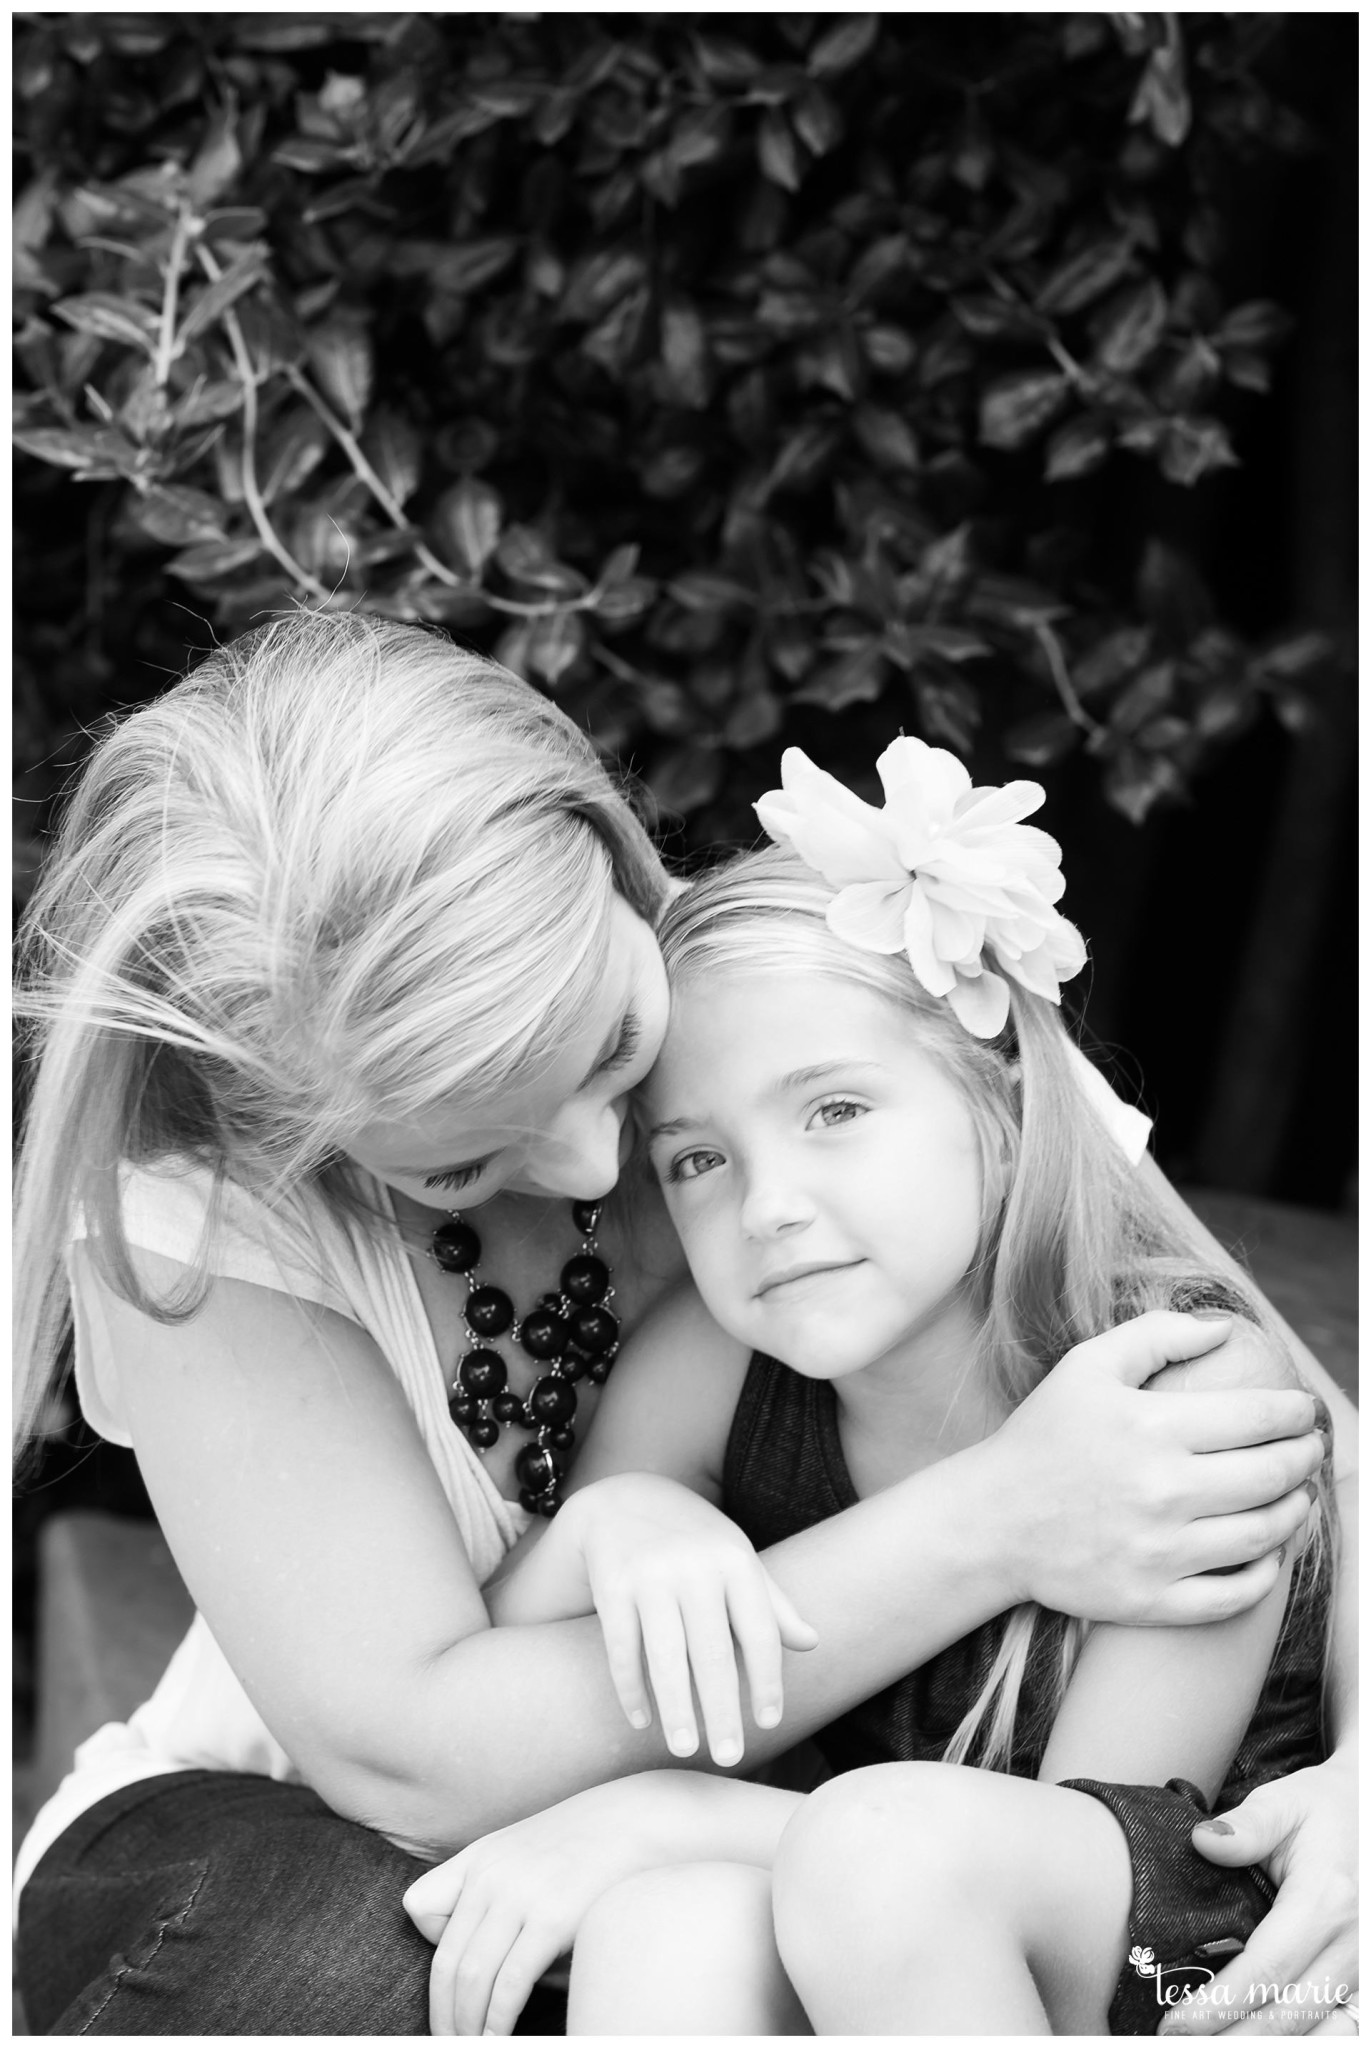 tessa_marie_weddings_legacy_story_focused_wedding_pictures_atlanta_wedding_photographer_family_pictures_portrait_Fine_art_memories_mothers_day_spring_moments_0279